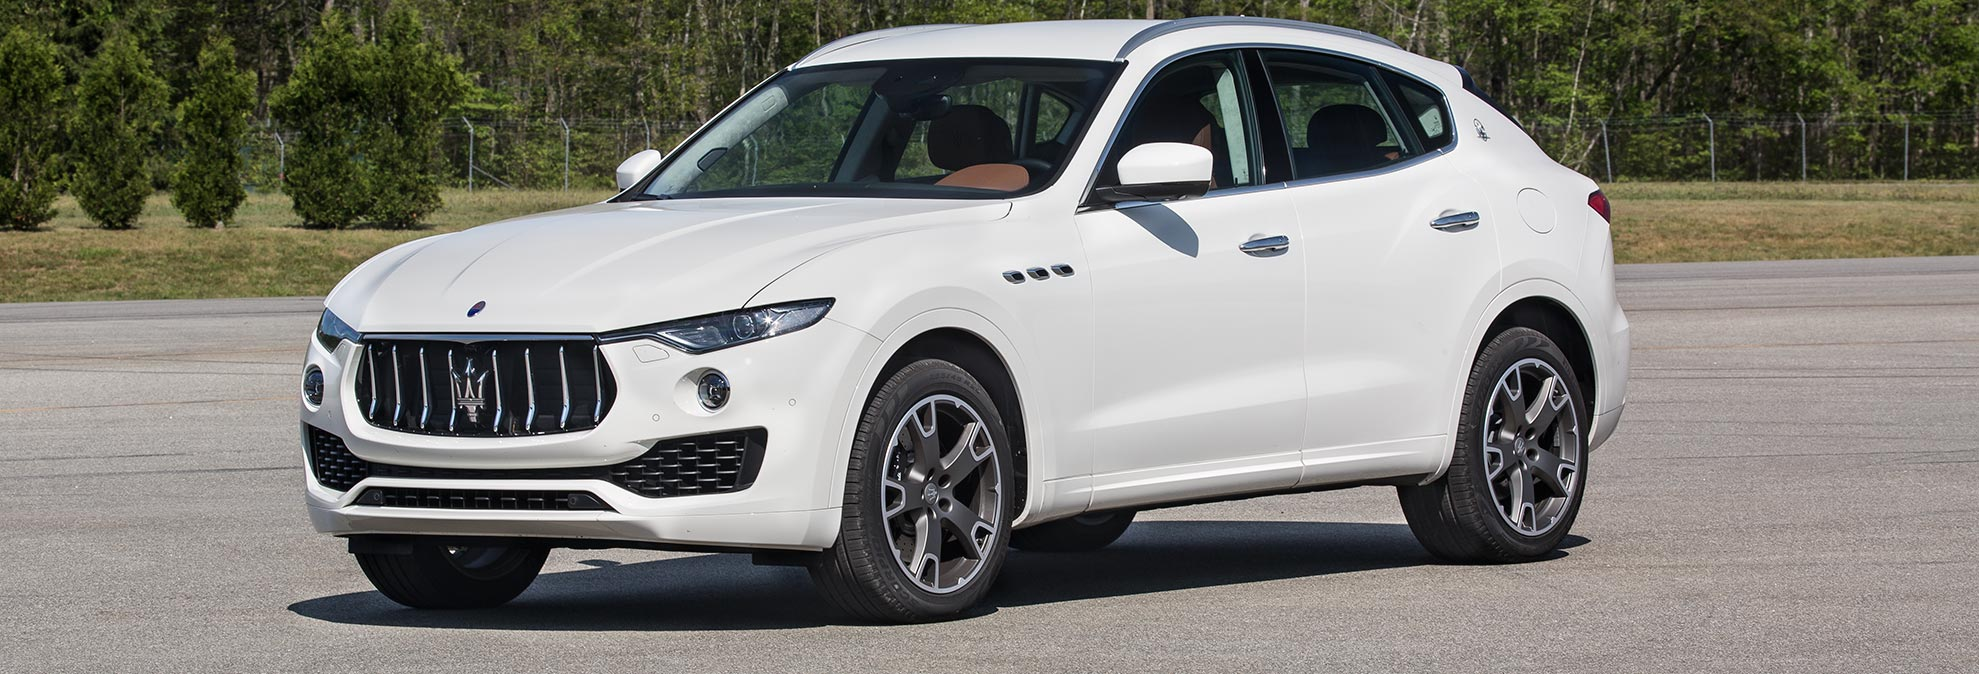 First Drive 2017 Maserati Levante Suv Consumer Reports